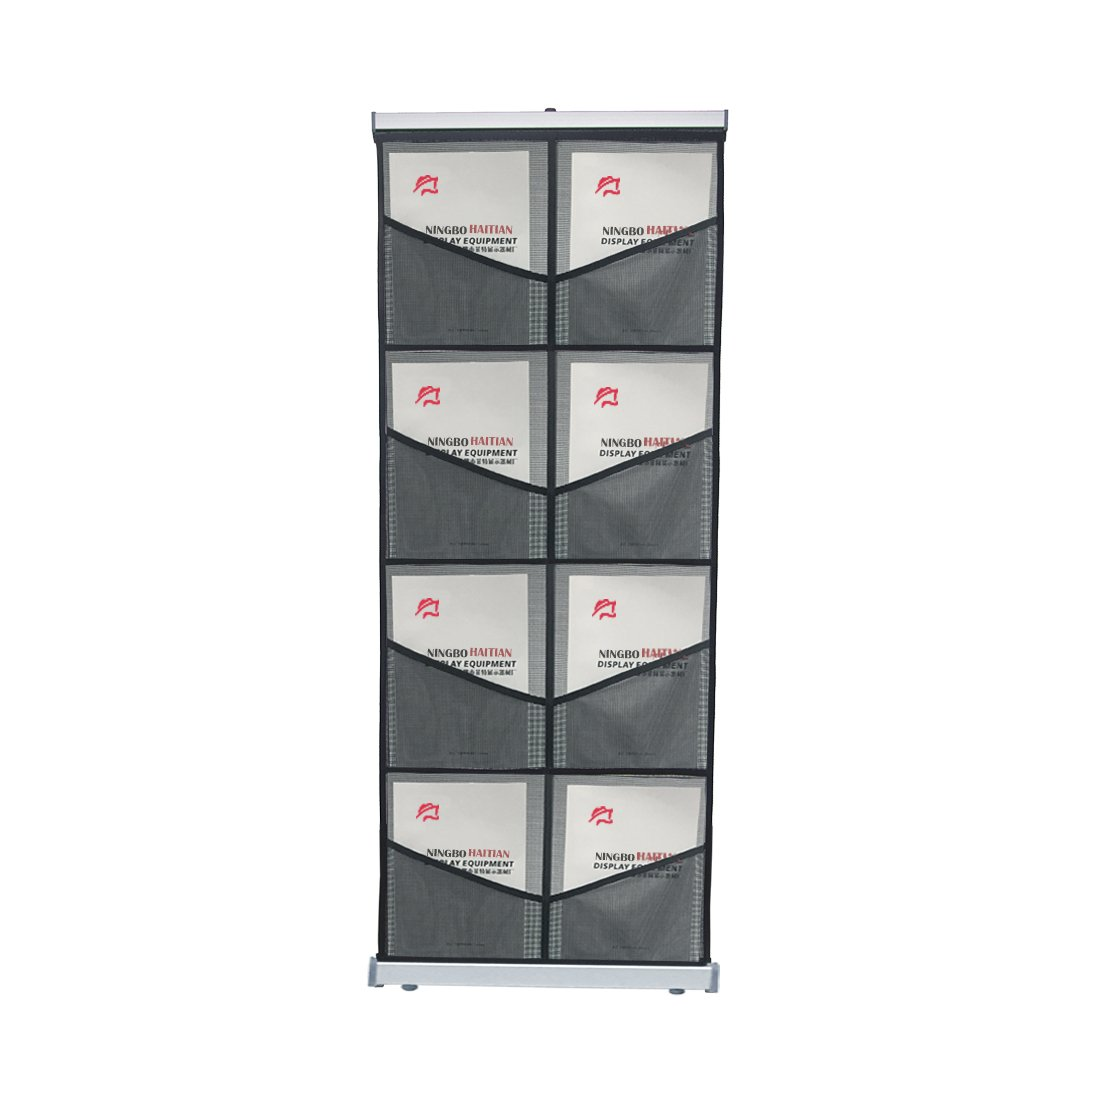 Haitian Folding Literature Magazine Rack with 8 Pockets, Roll up Mesh Brochure Holder with Light Weight Aluminum Structure,Carrying Bag Included Haitian Industral Co. Ltd.